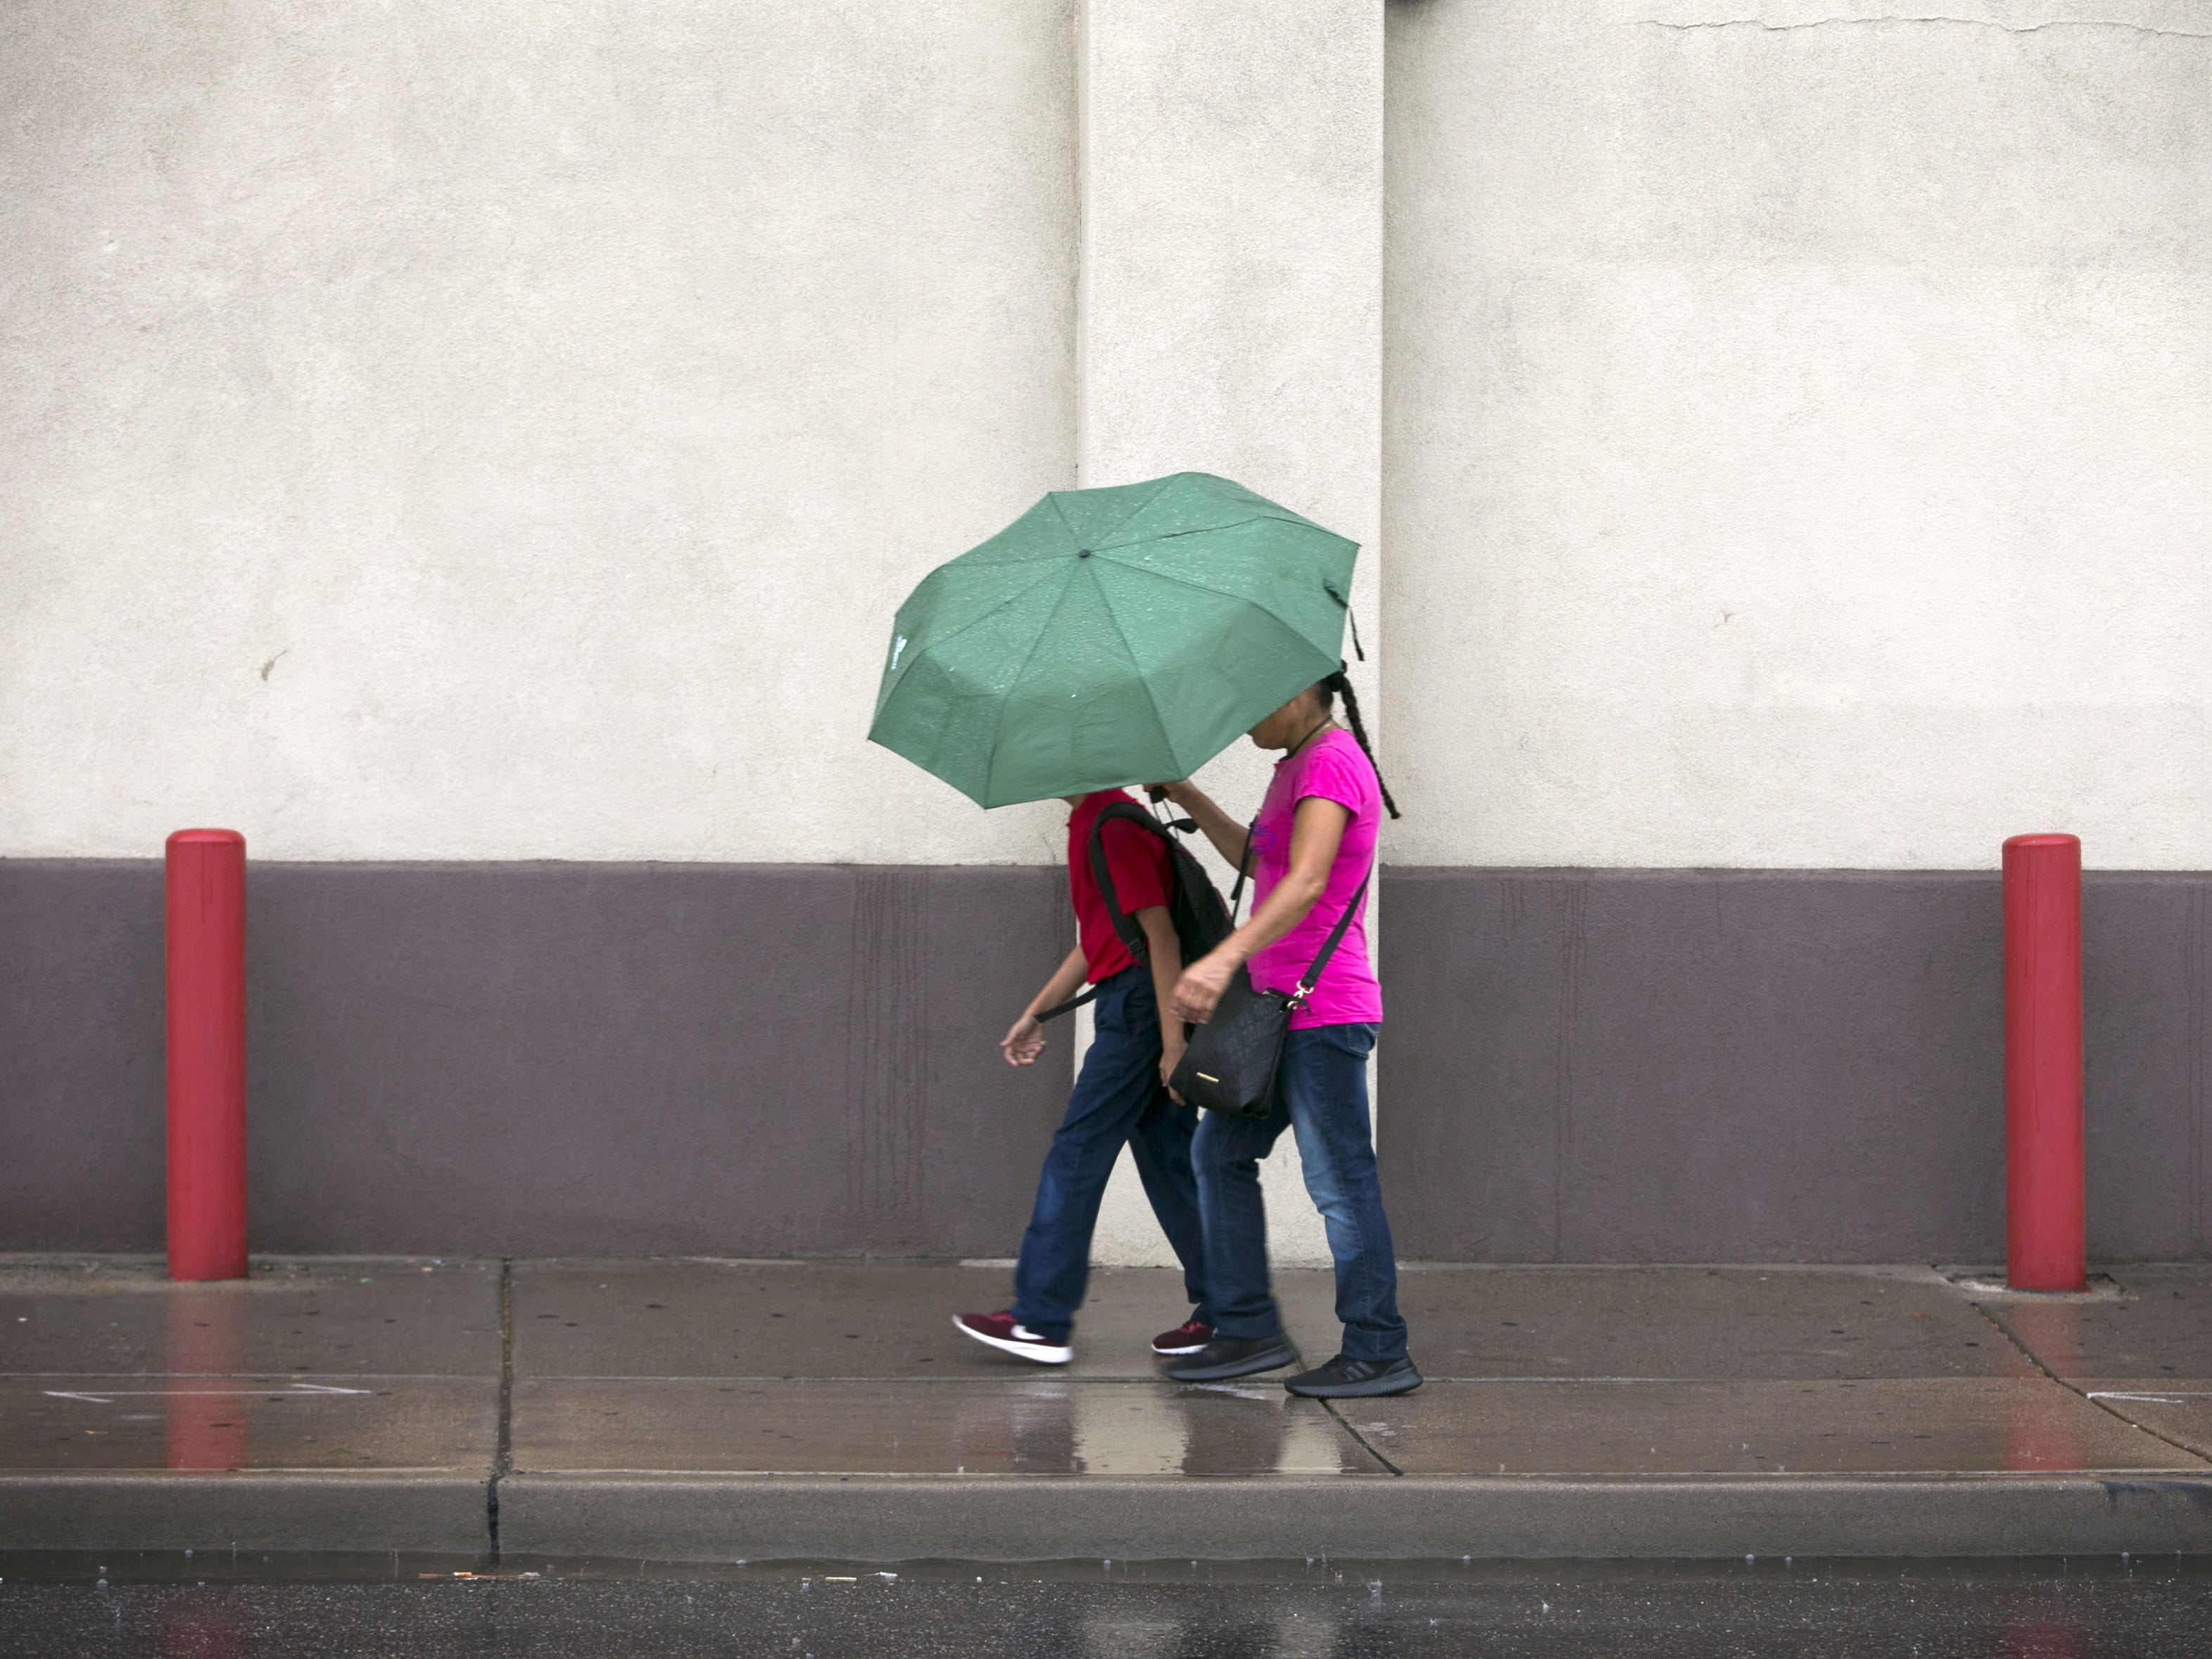 Pedestrians stay dry under their umbrella while walking in the rain along McDowell Road near 24th Street in Phoenix on Wednesday, September 19, 2018.